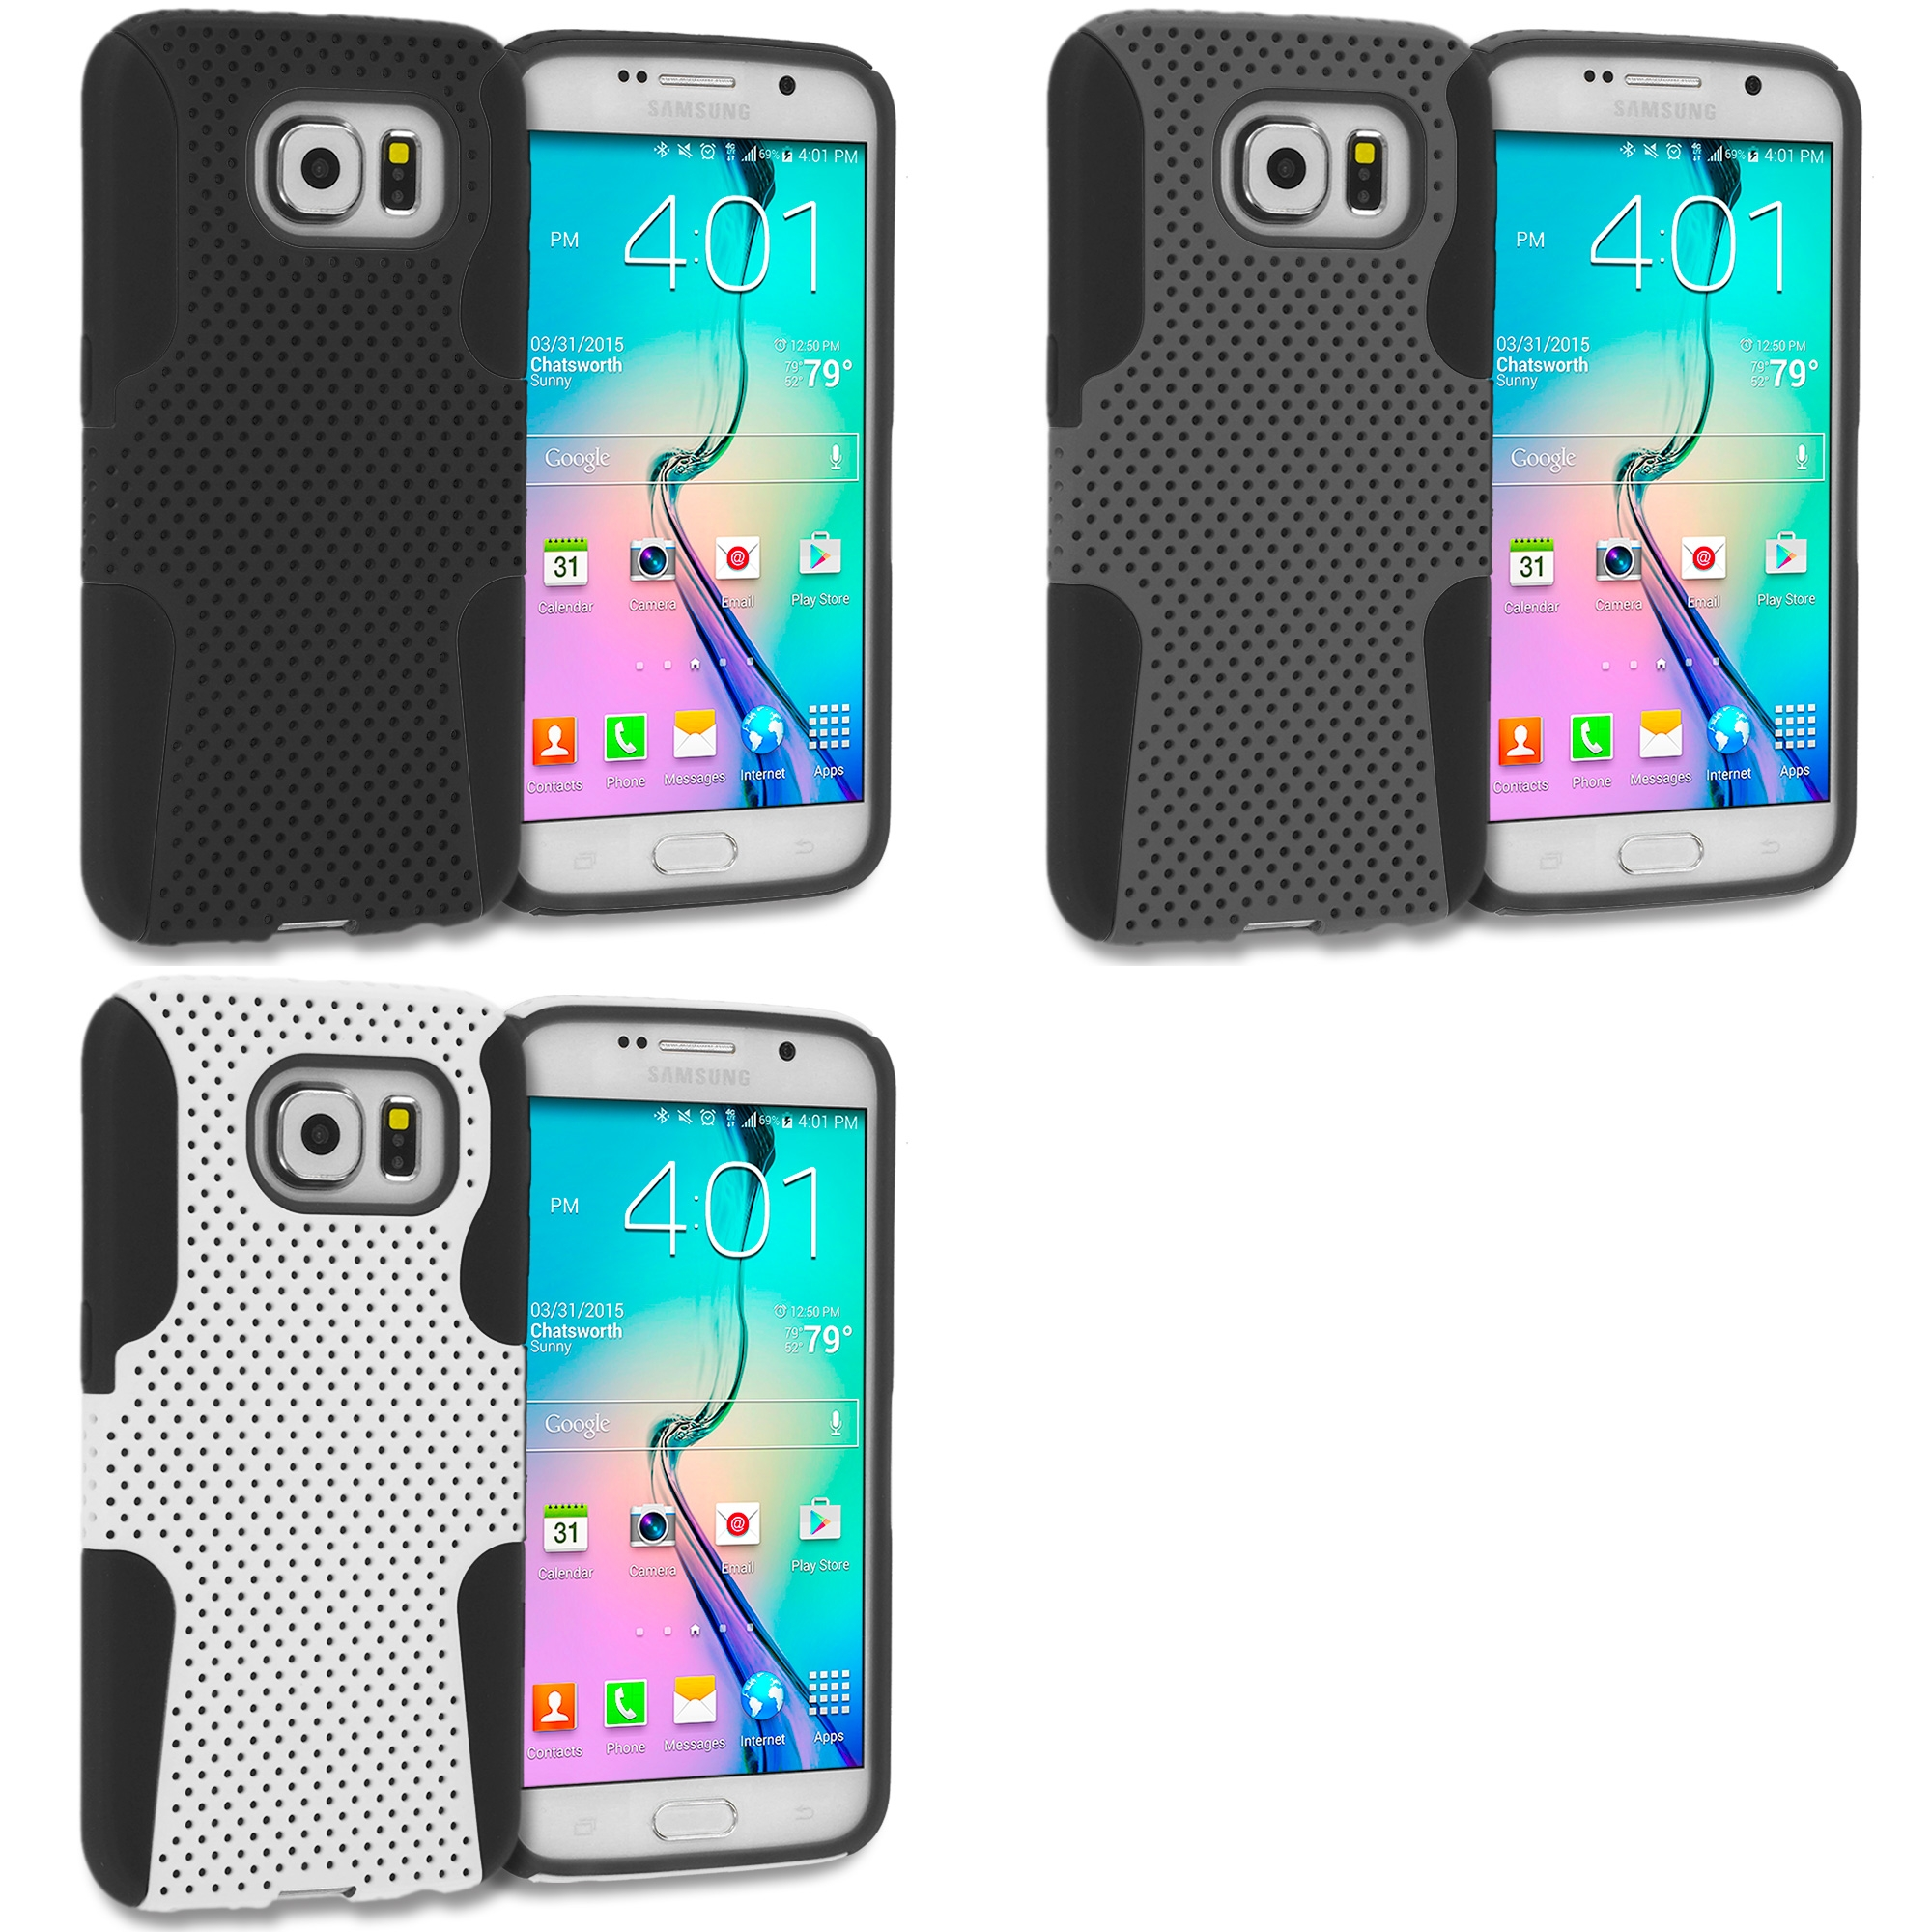 Samsung Galaxy S6 Combo Pack : Black / Black Hybrid Mesh Hard/Soft Case Cover